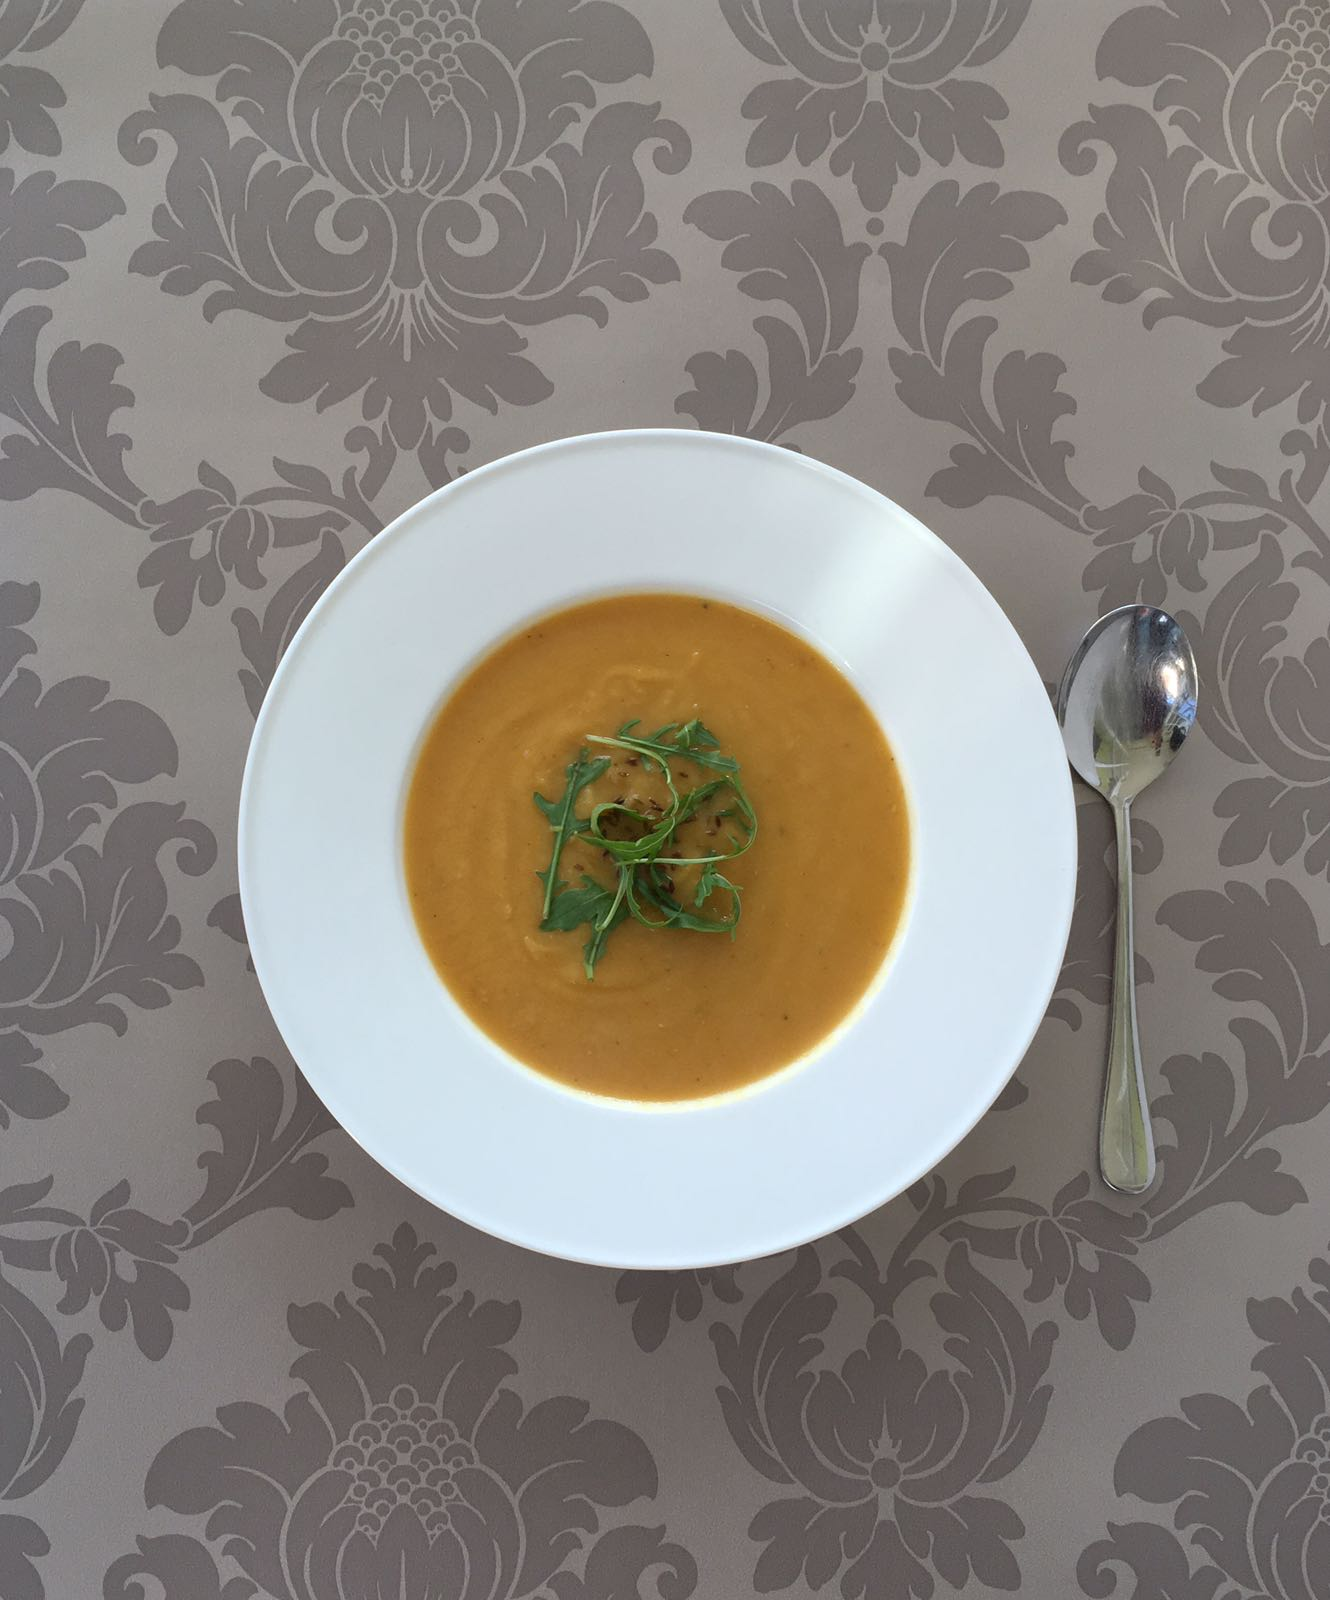 Spiced Parsnip Soup - full of natural anti inflammatory properties and spices to warm the cockles of your heart